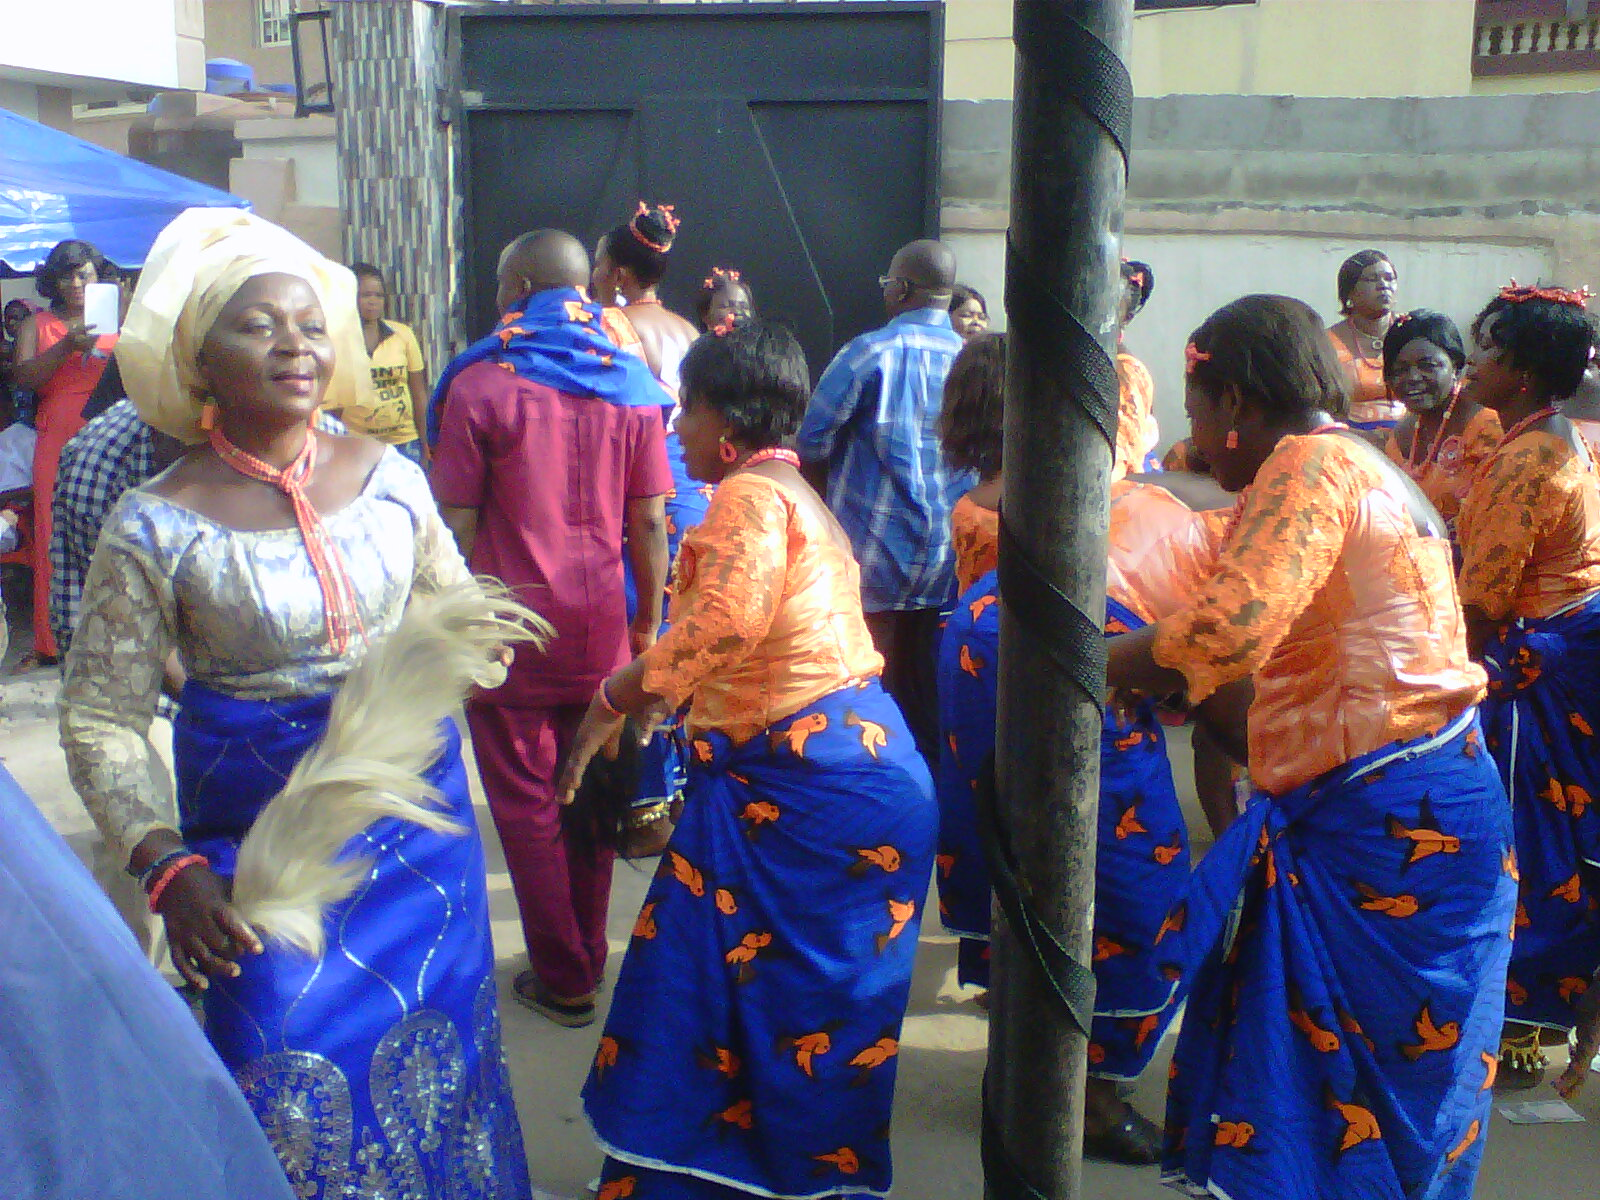 eziafa-cultural-dance-organized-by-iiu-womens-wing-lagos-brance-to-raise-fund-for-40-years-abadoned-community-hall